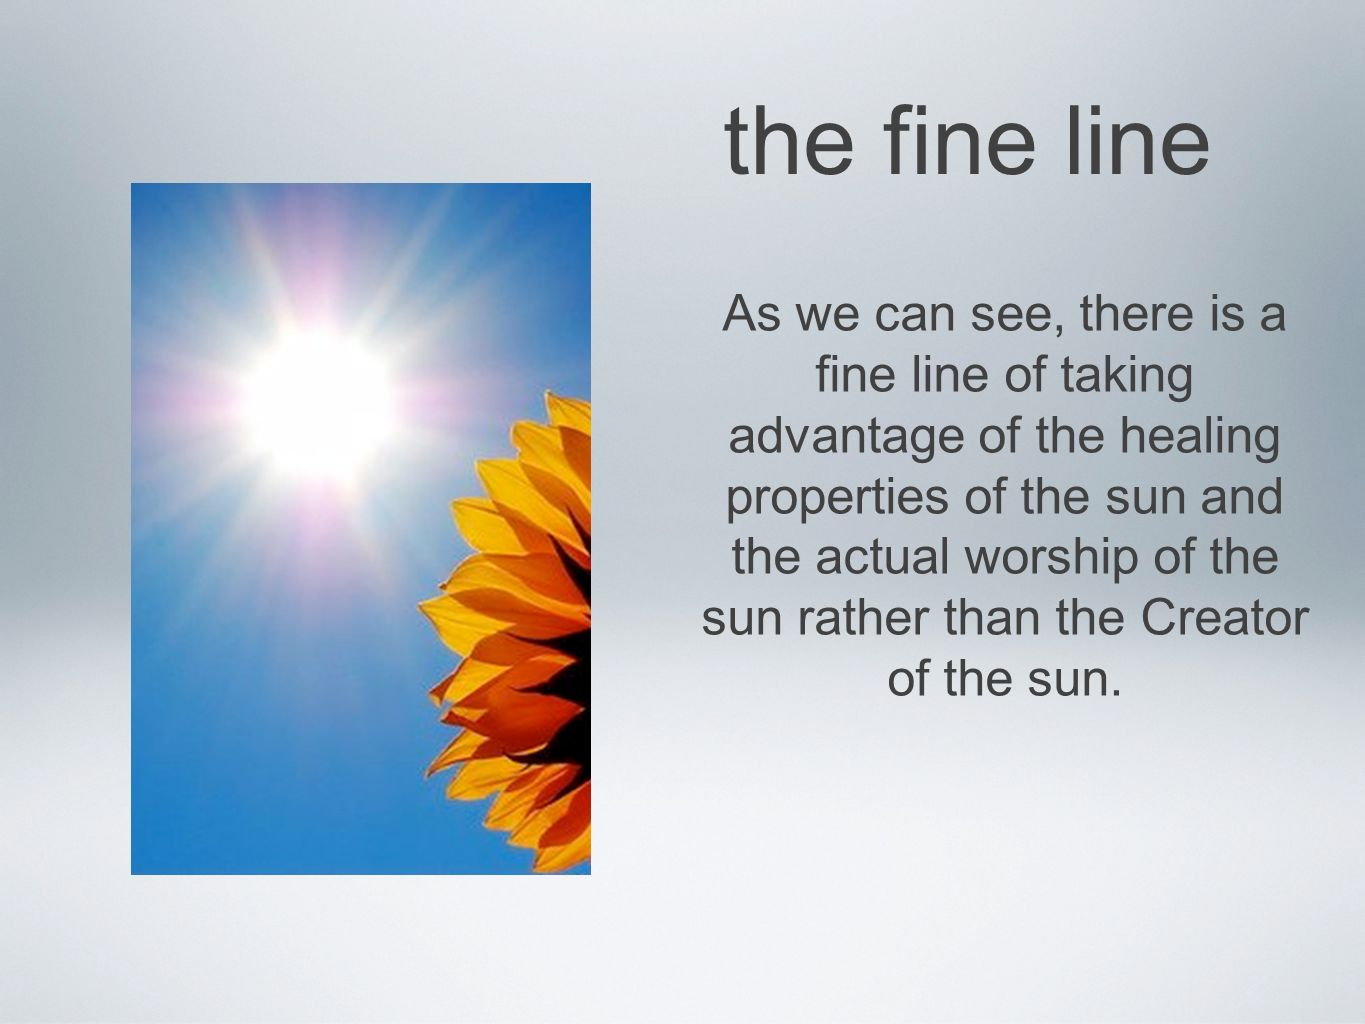 the fine line As we can see, there is a fine line of taking advantage of the healing properties of the sun and the actual worship of the sun rather than the Creator of the sun.